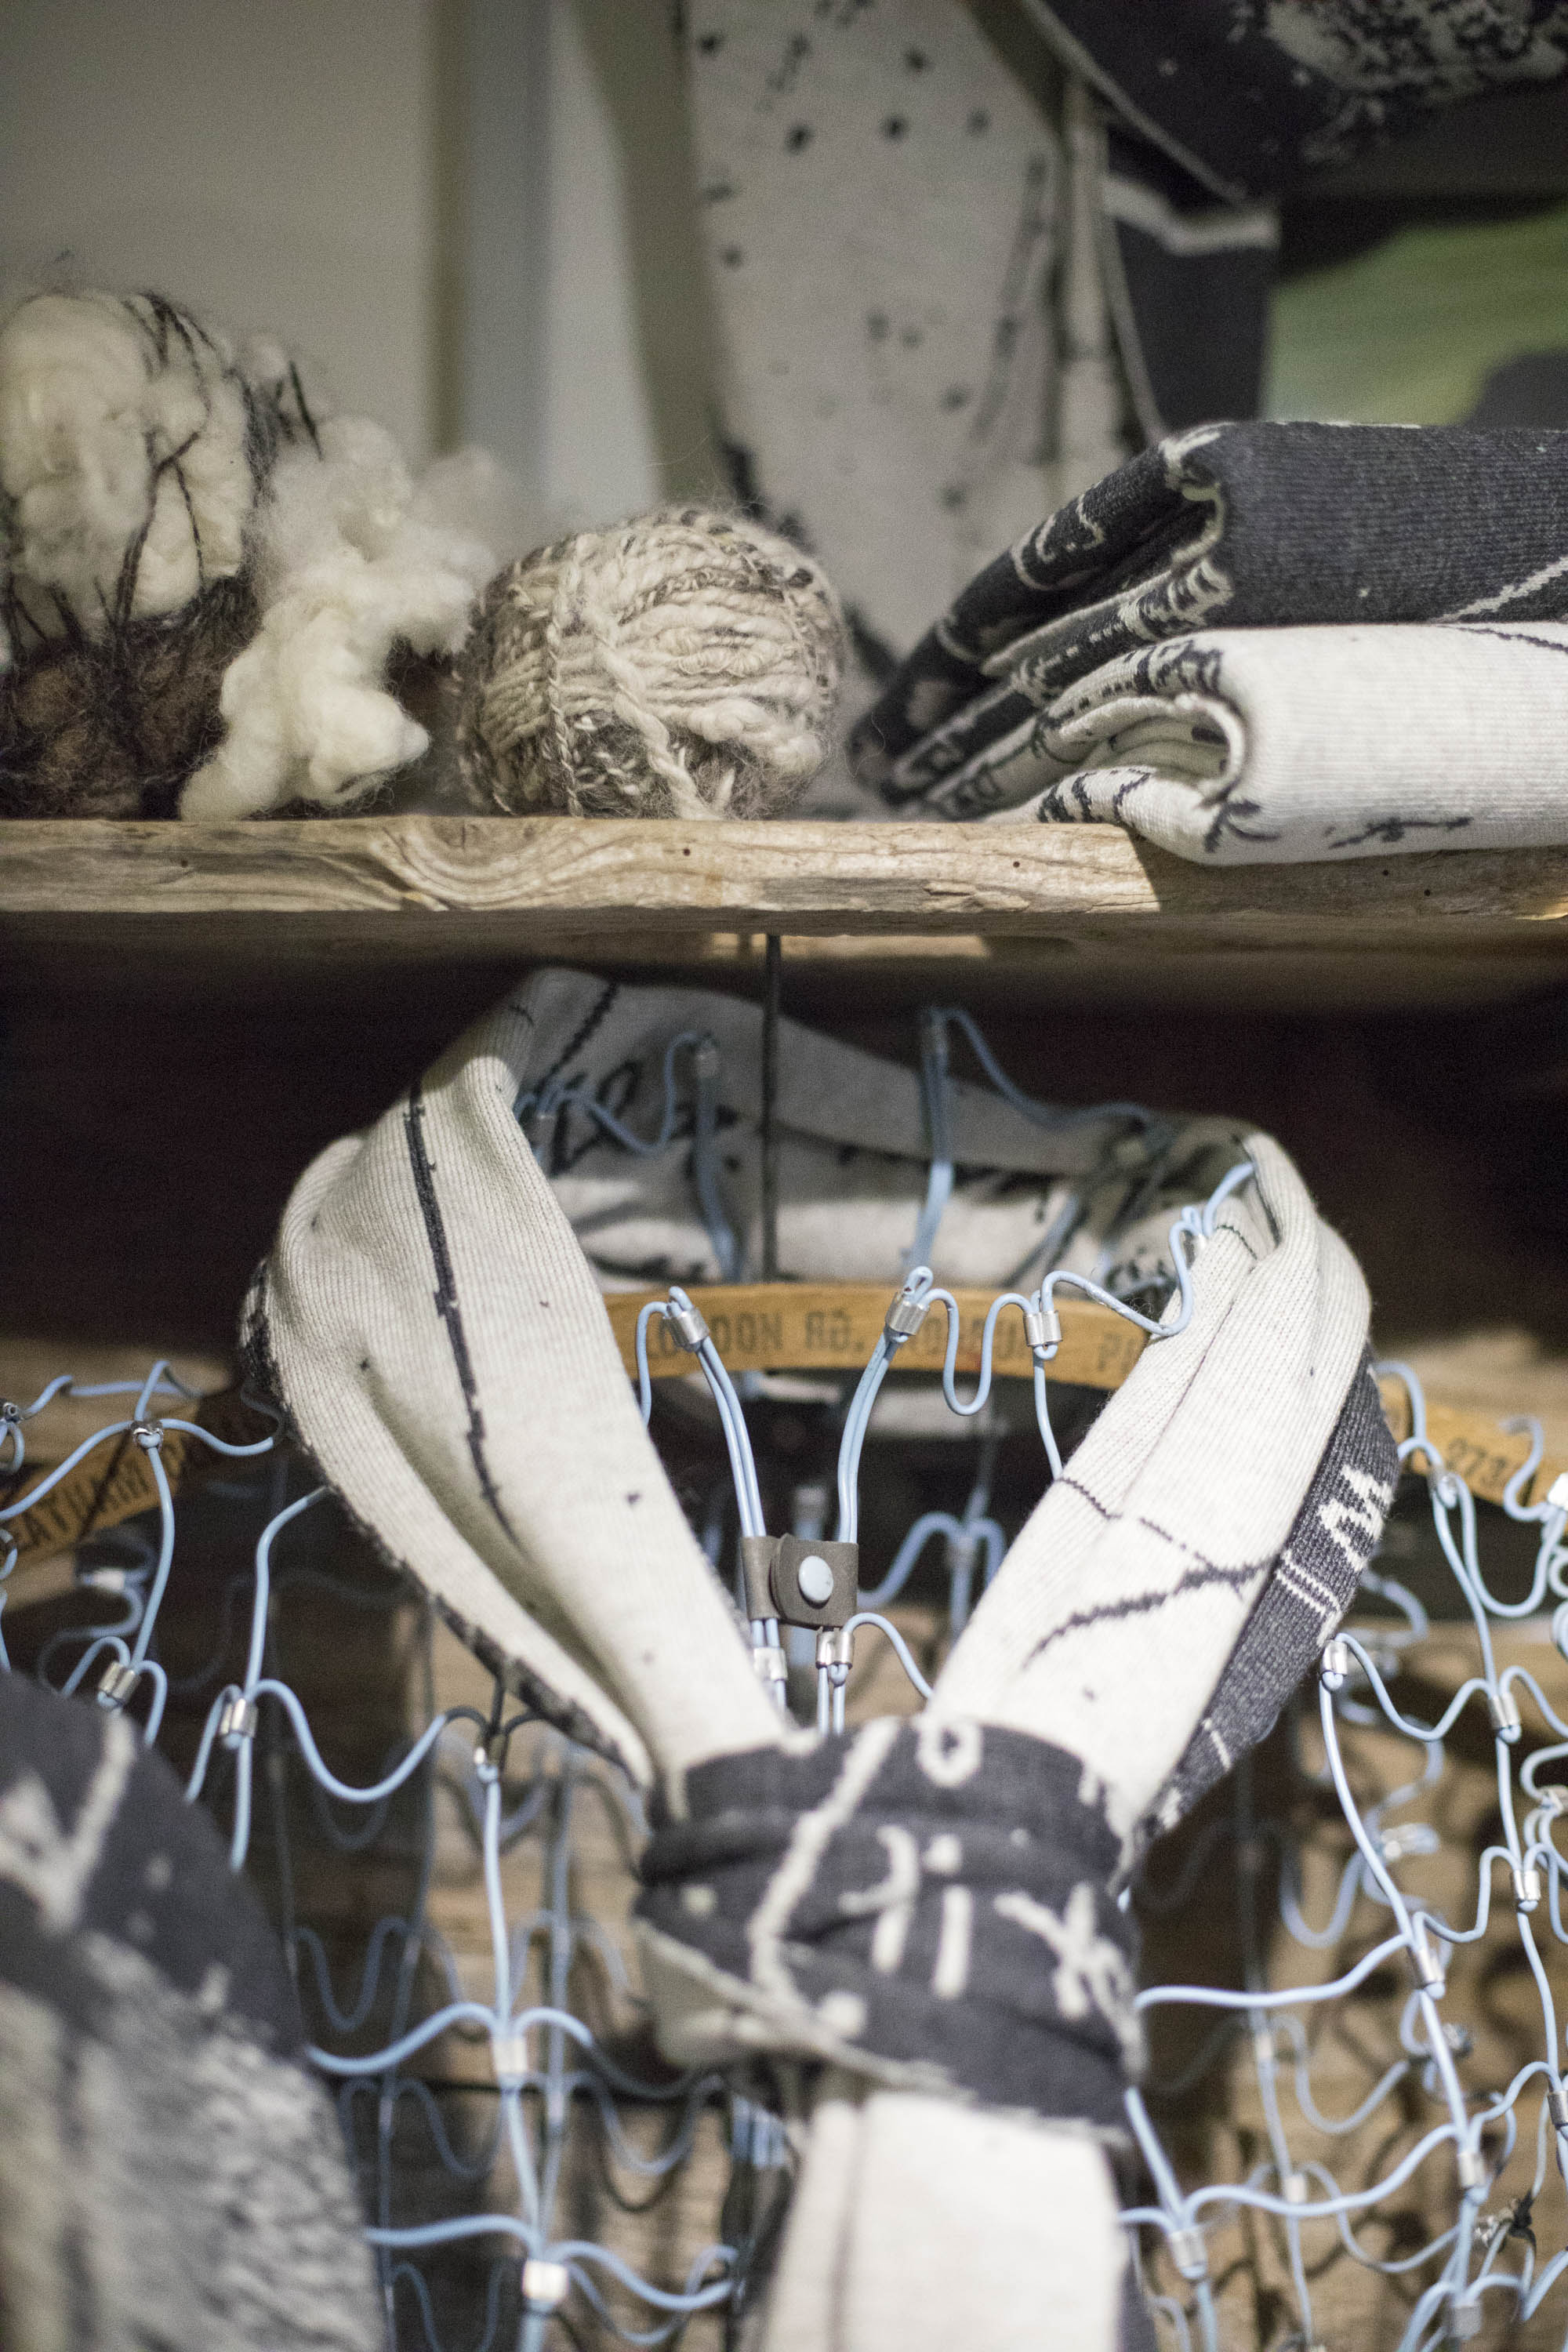 Contemporary knitwear studio in the Shetland Islands, Scotland. Handspun yarn, a charcoal and stone white scarf on a wire frame mannequin, rustic shelving